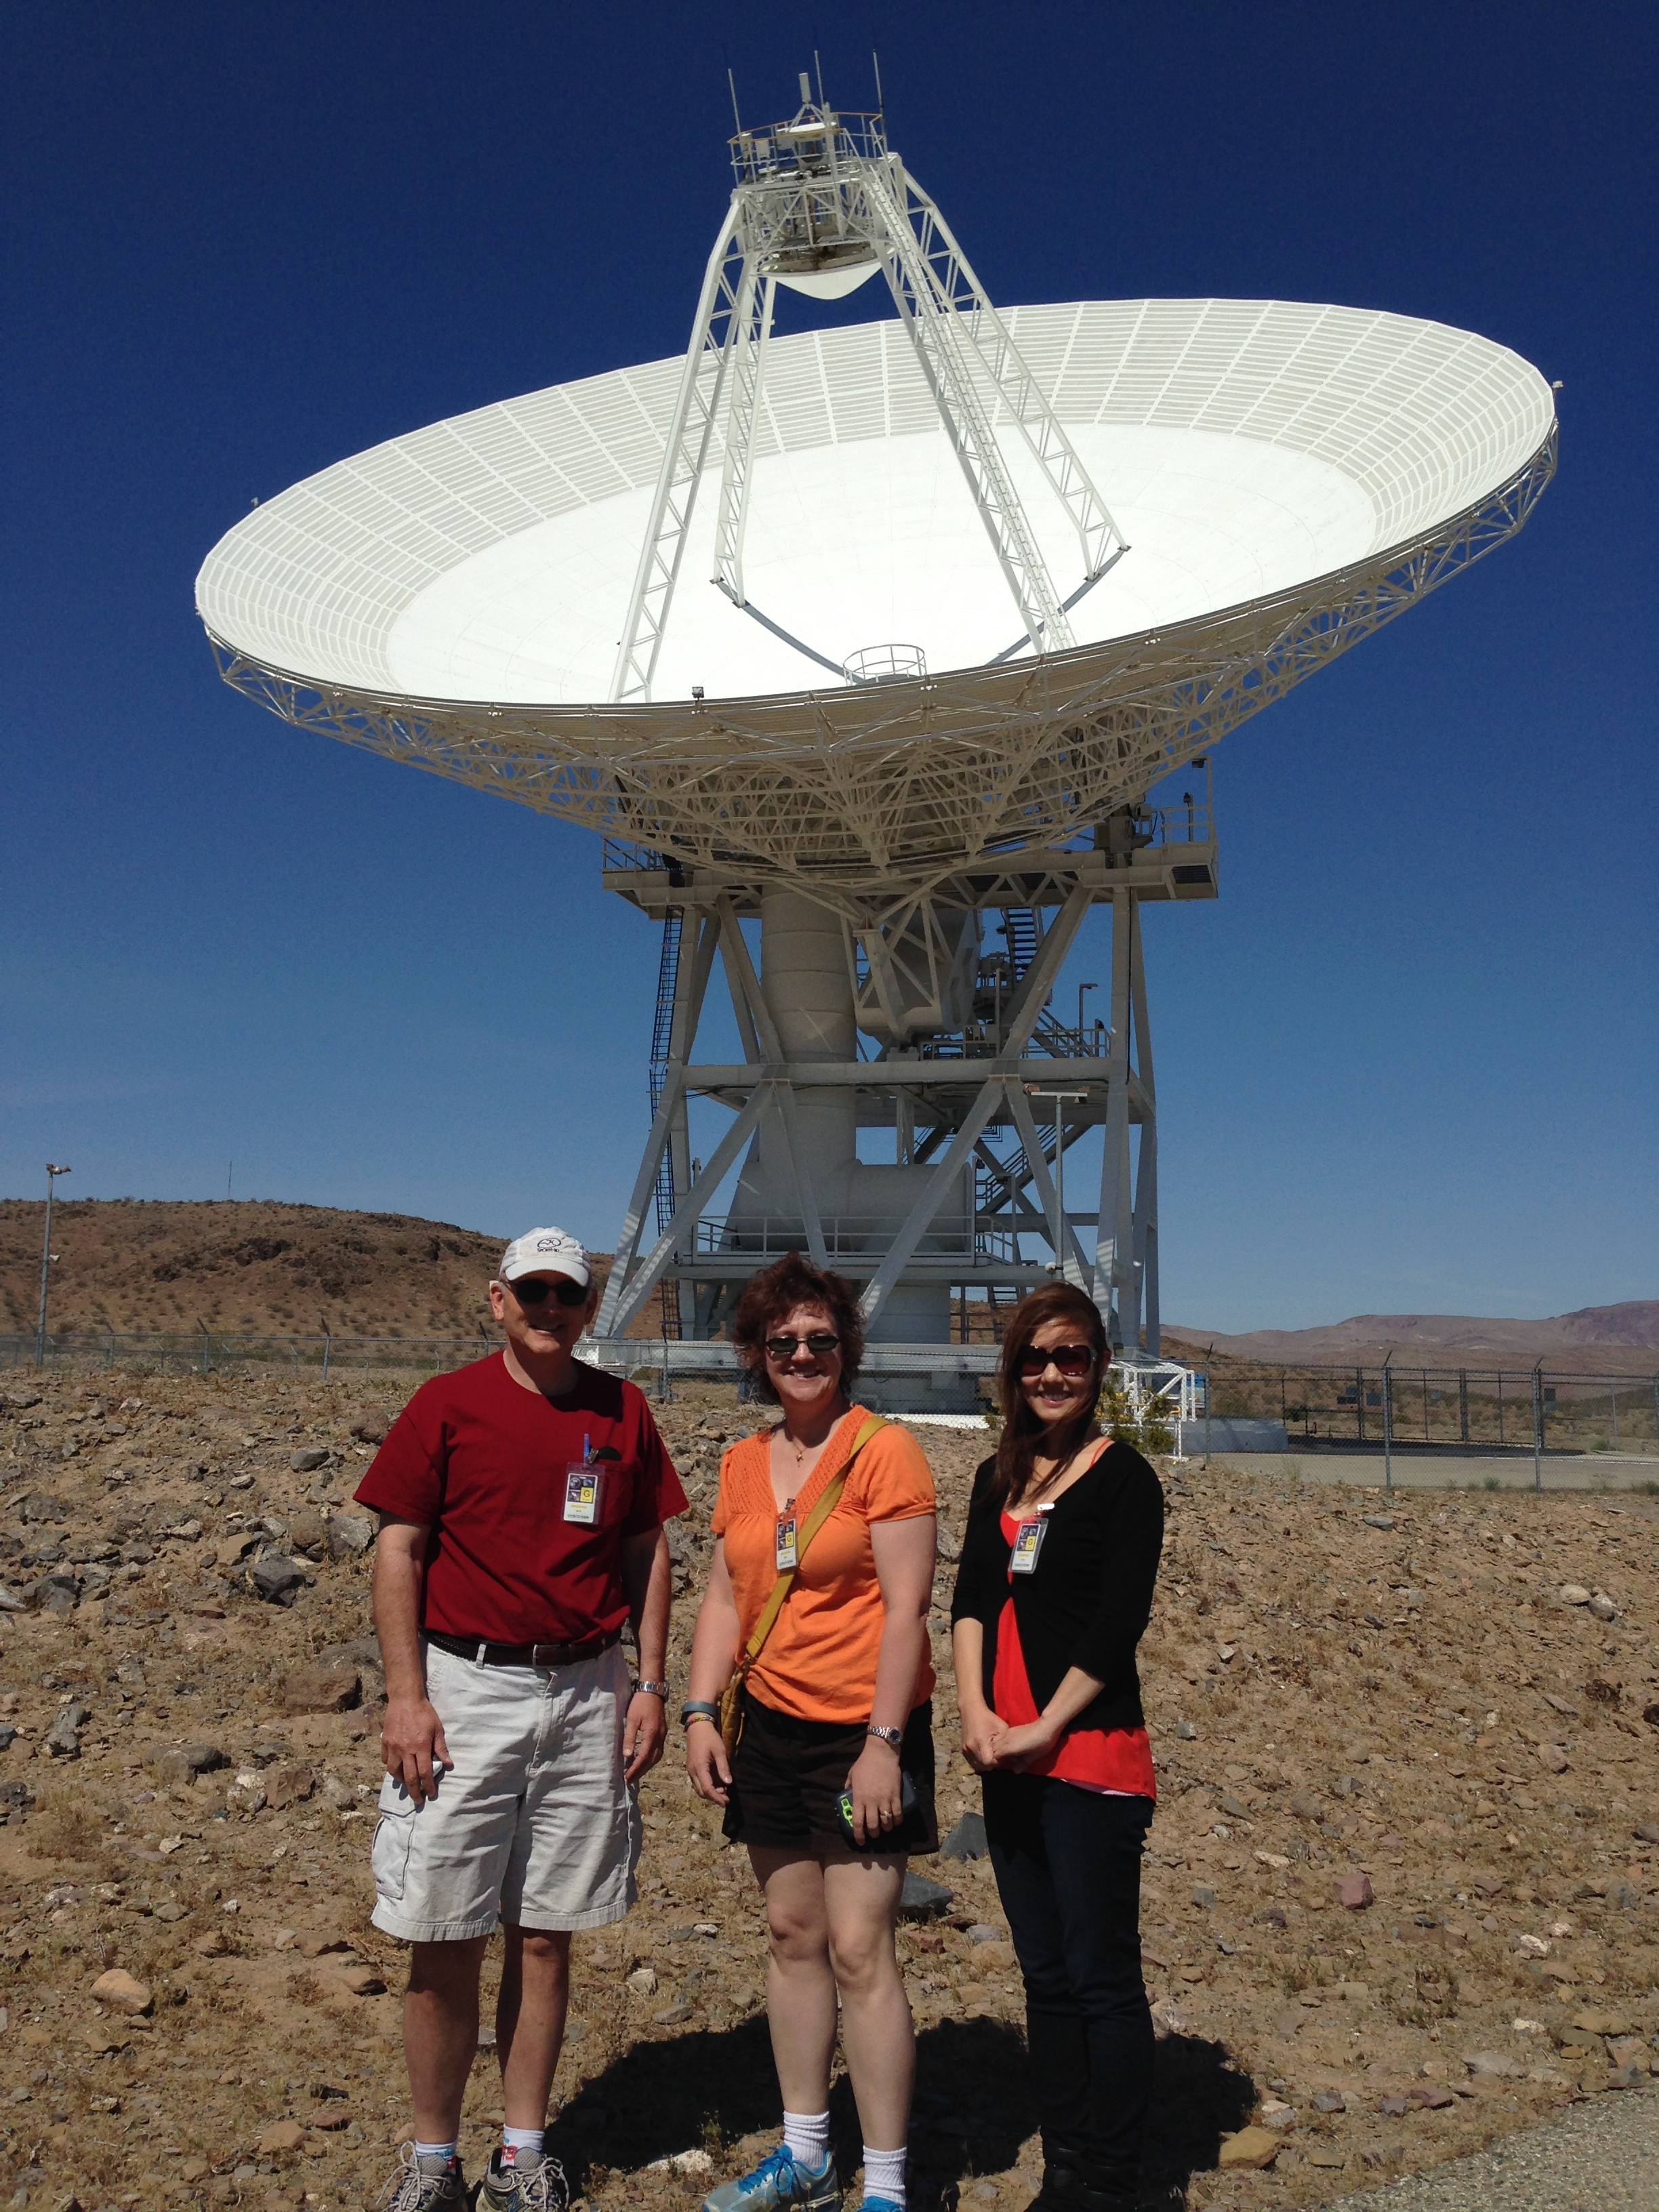 Nari at the Goldstone Deep Space Communications Complex in California.